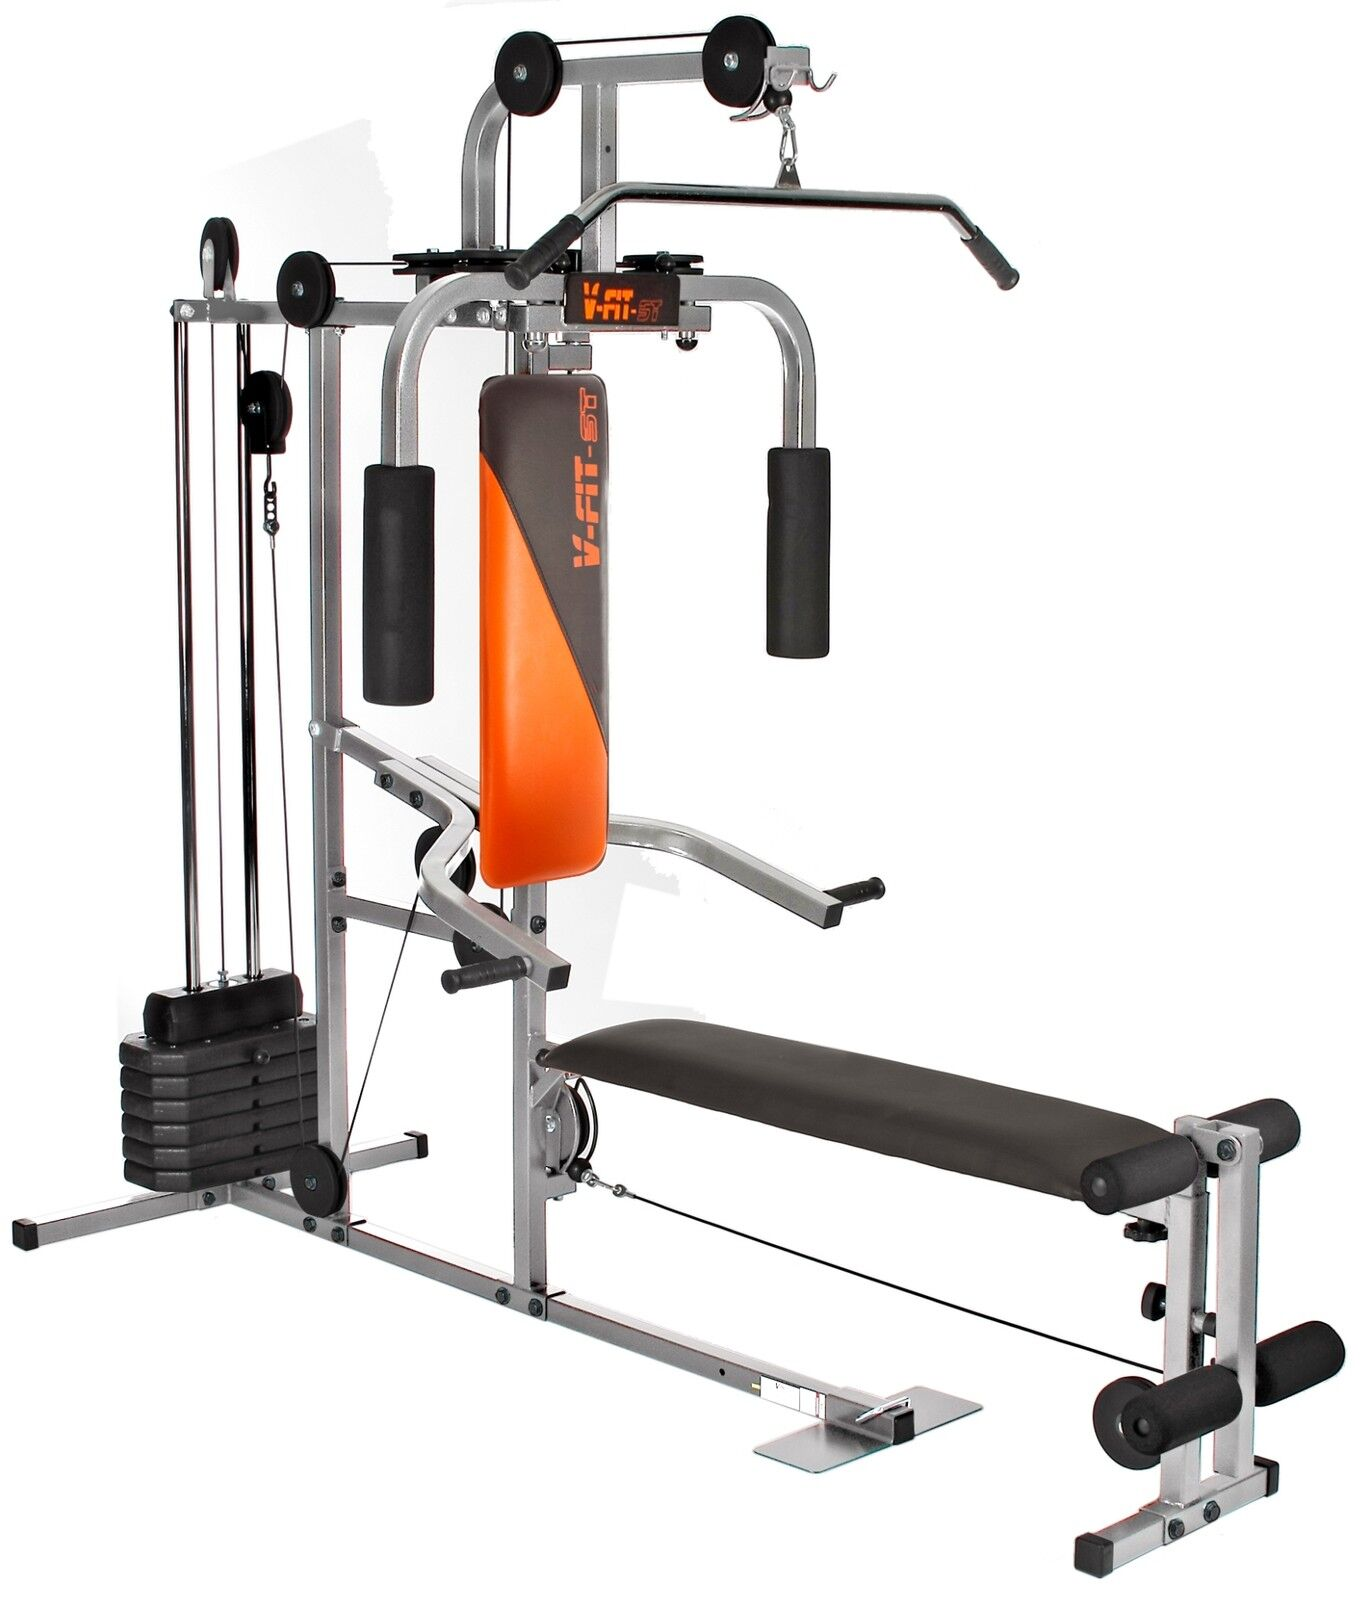 Details about Conversion Kit for V-fit LFG2 Lay Flat Home Multi Gym r r p  £30 00